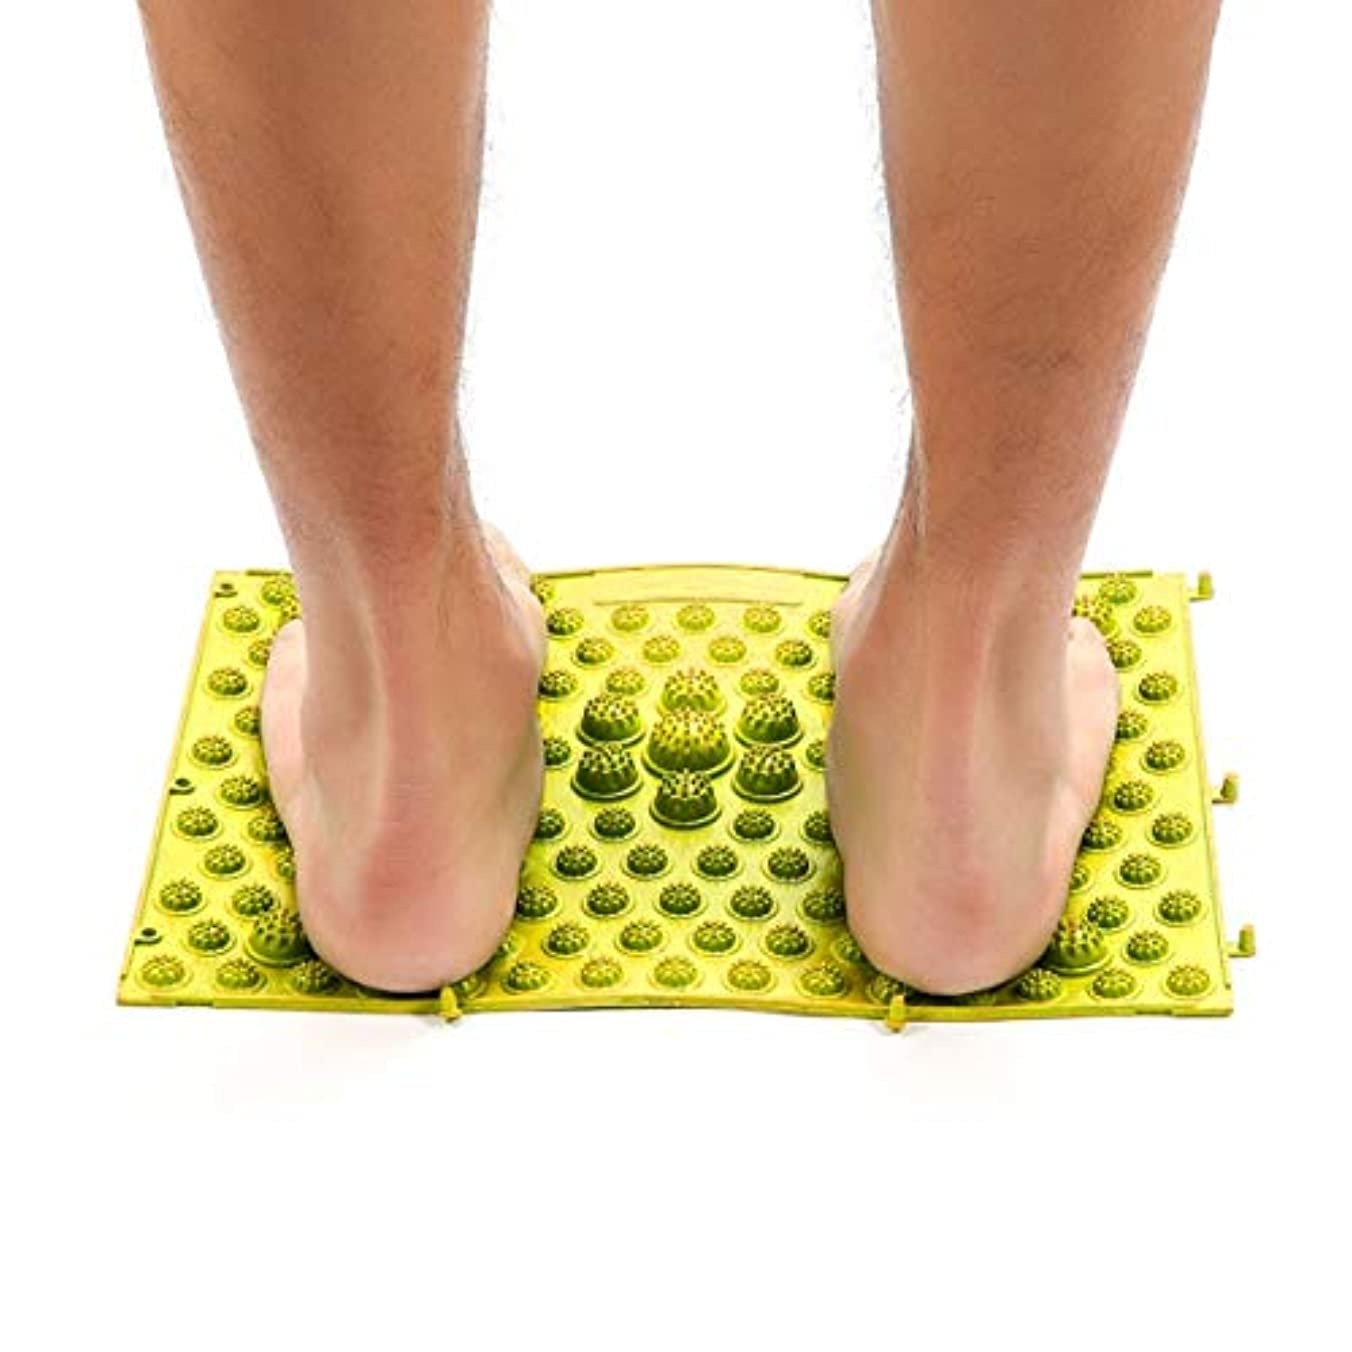 悪名高い怠惰走るAcupressure Foot Mats Running Man Game Same Type Foot Reflexology Walking Massage Mat for Pain Relief Stress Relief...